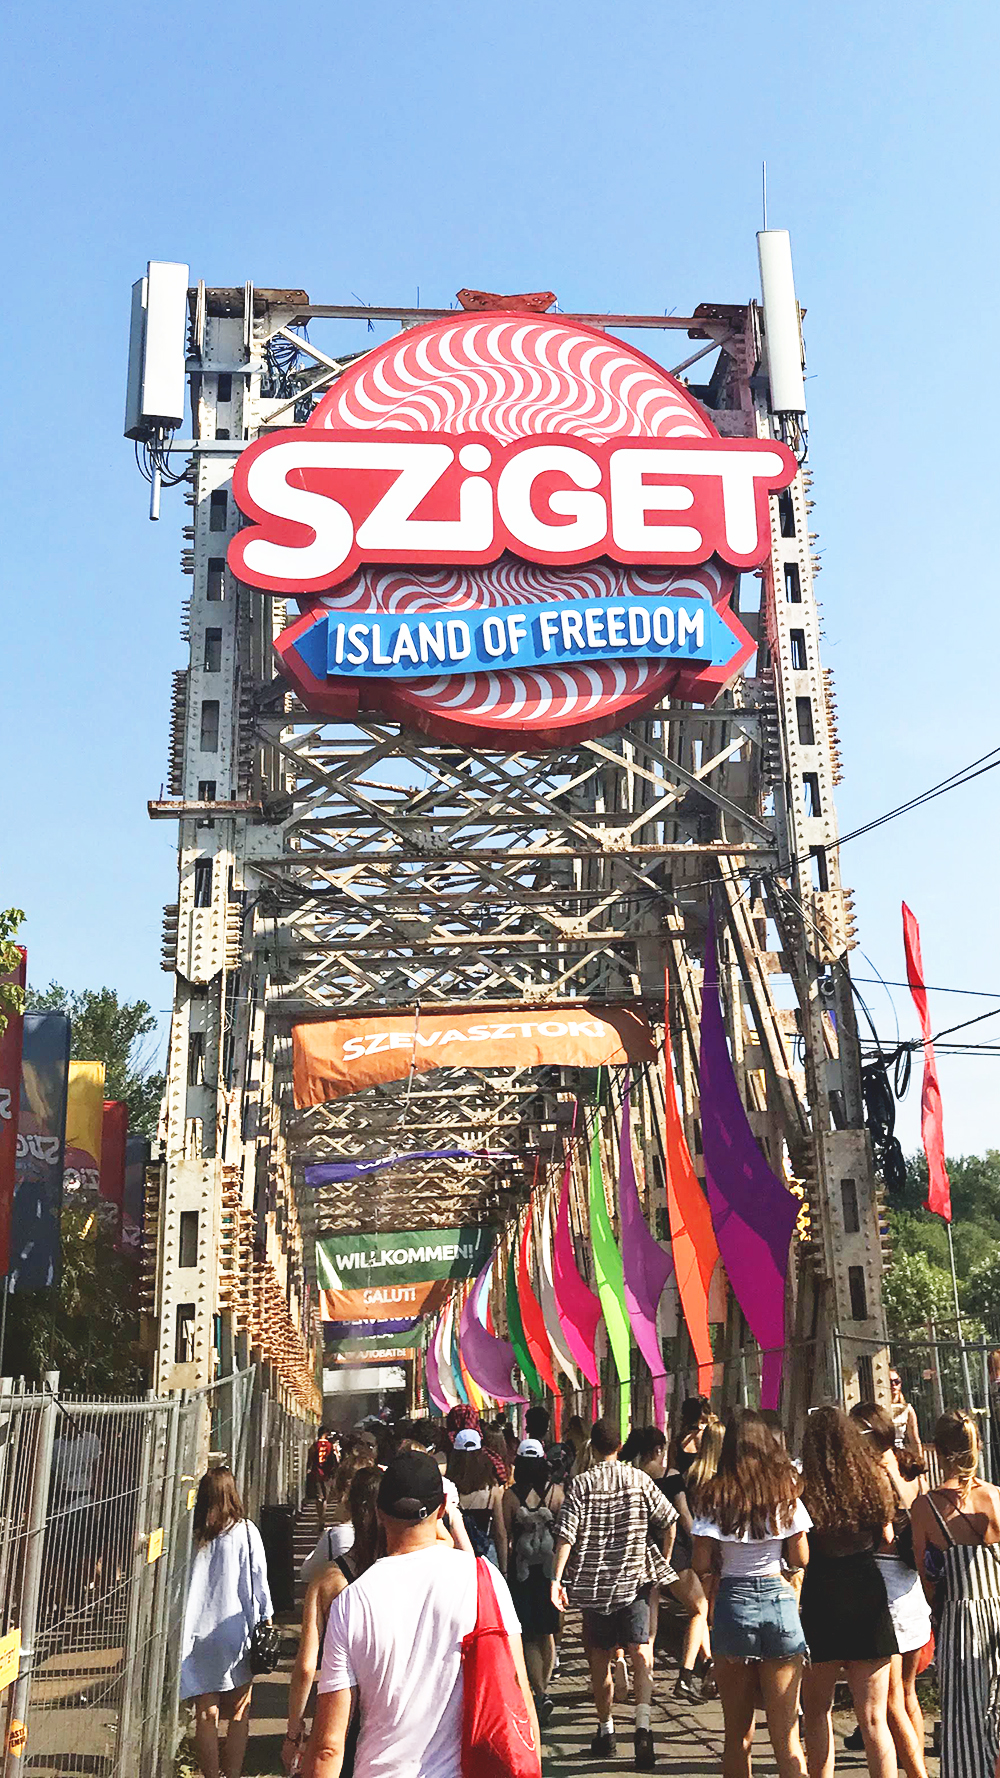 Visit Budapest in summer and attend Sziget festival - A first-timer's guide to Budapest - Things to know about visiting Budapest, Hungary | Aliz's Wonderland #Budapest #Hungary #travel #travelguide #Budapestguide